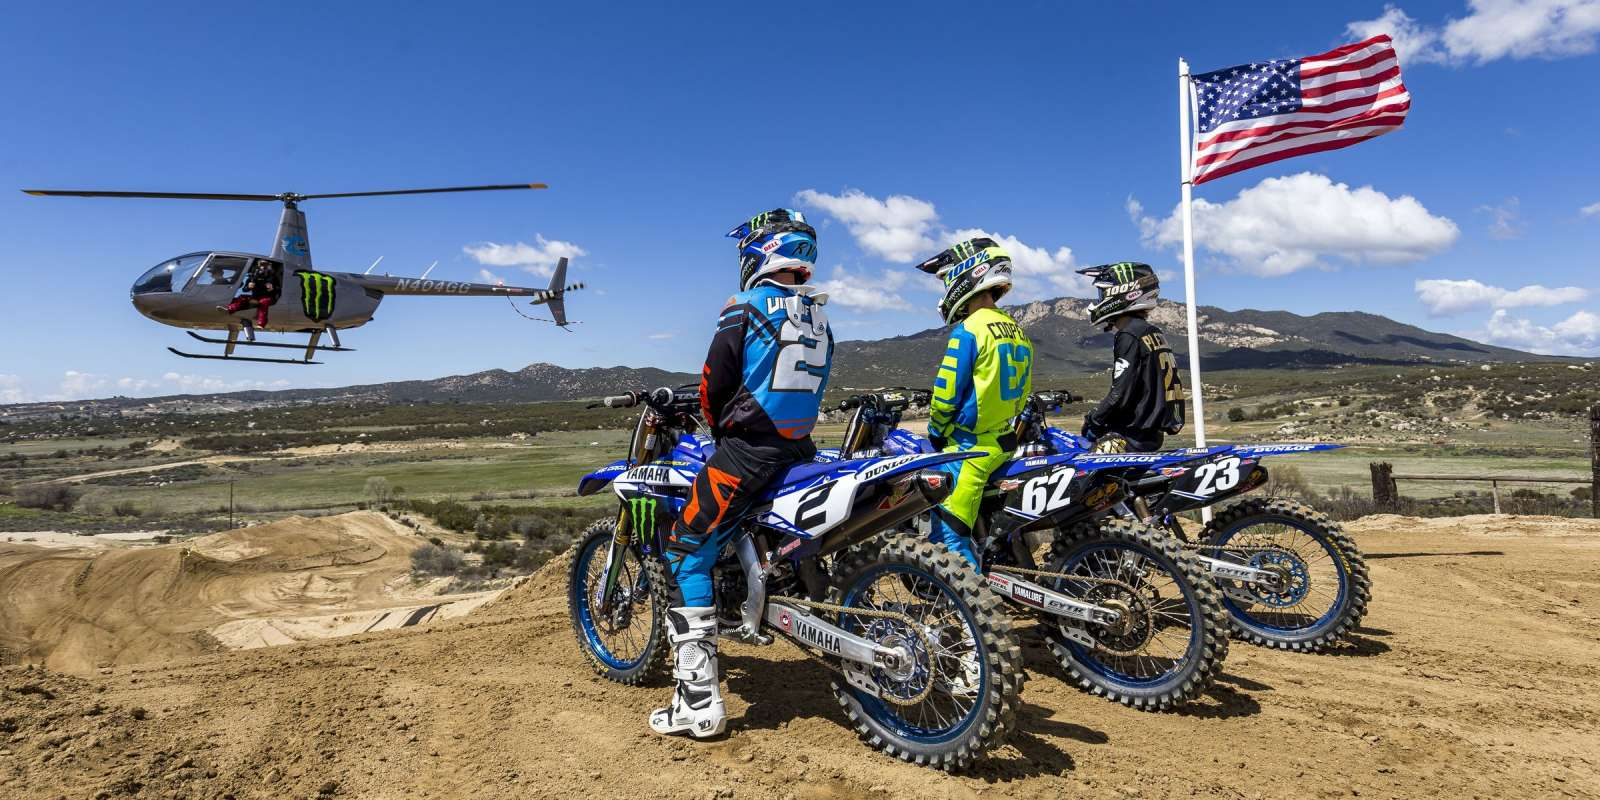 Watch the Monster Energy Yamaha Team- Ryan Villopoto, Aaron Plessinger, and Justin Cooper shred Cahuilla MX track in Southern California.